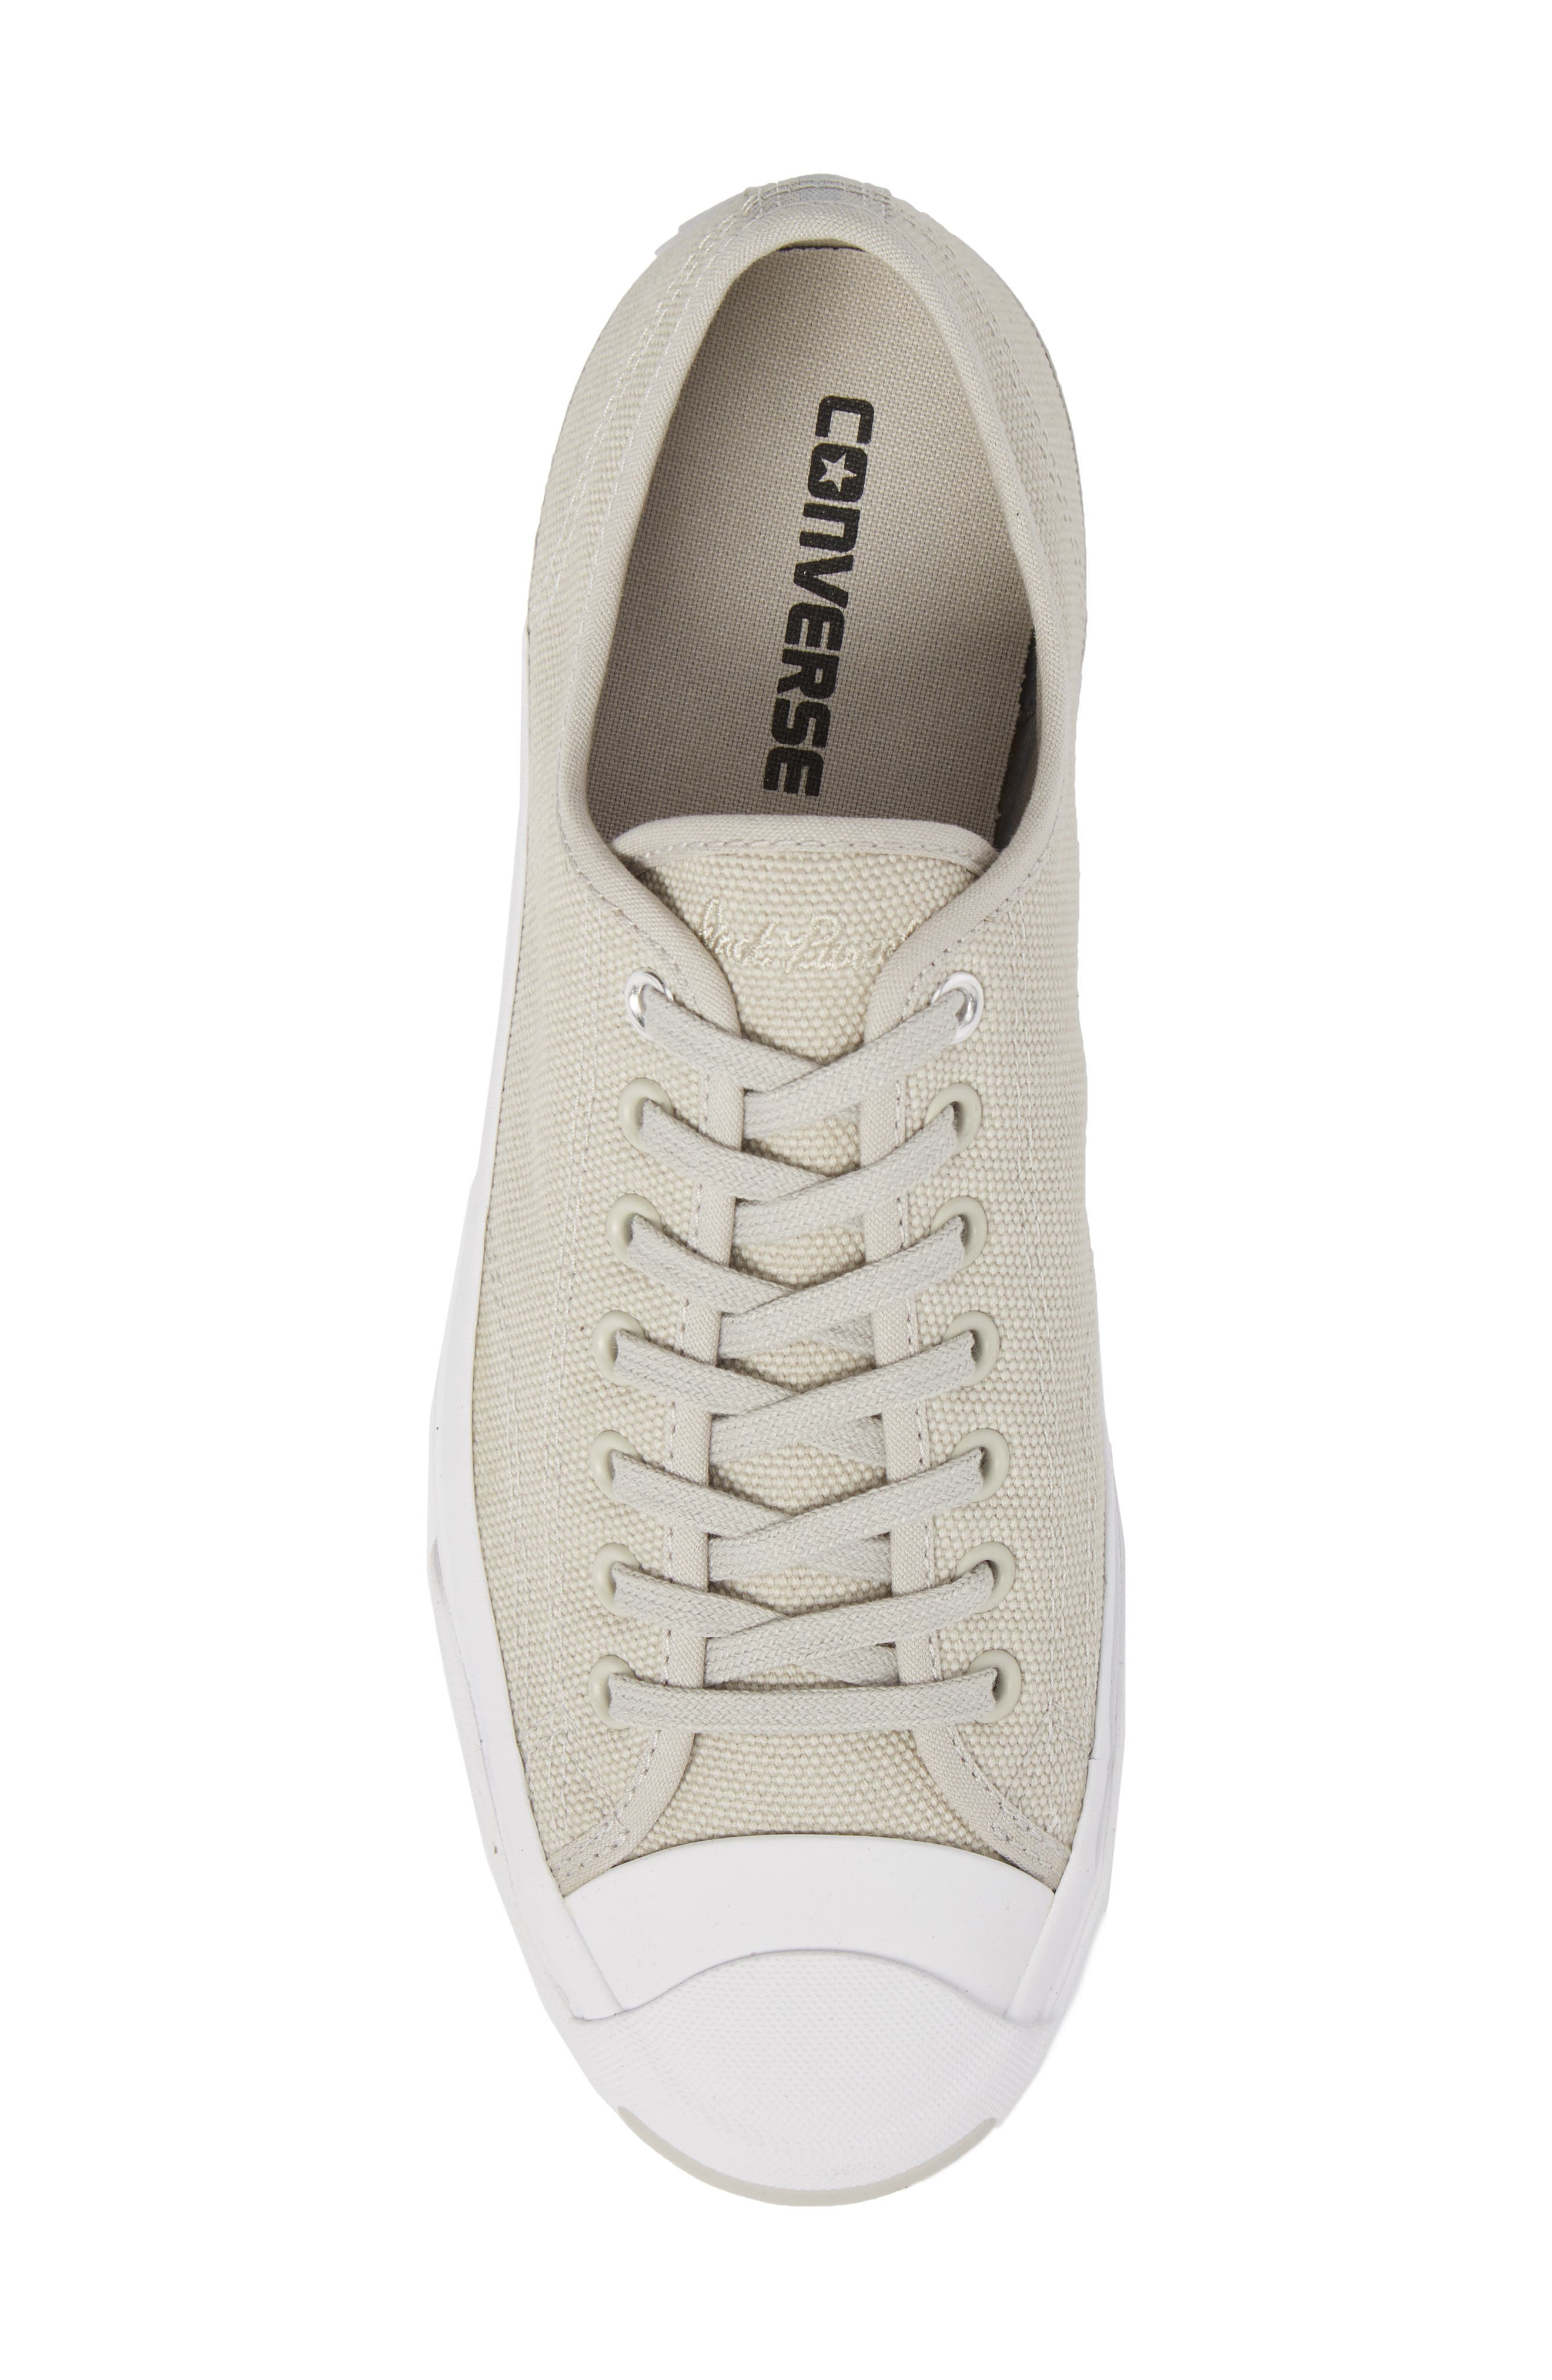 Jack Purcell Sneaker,                             Alternate thumbnail 5, color,                             Pale Grey Canvas